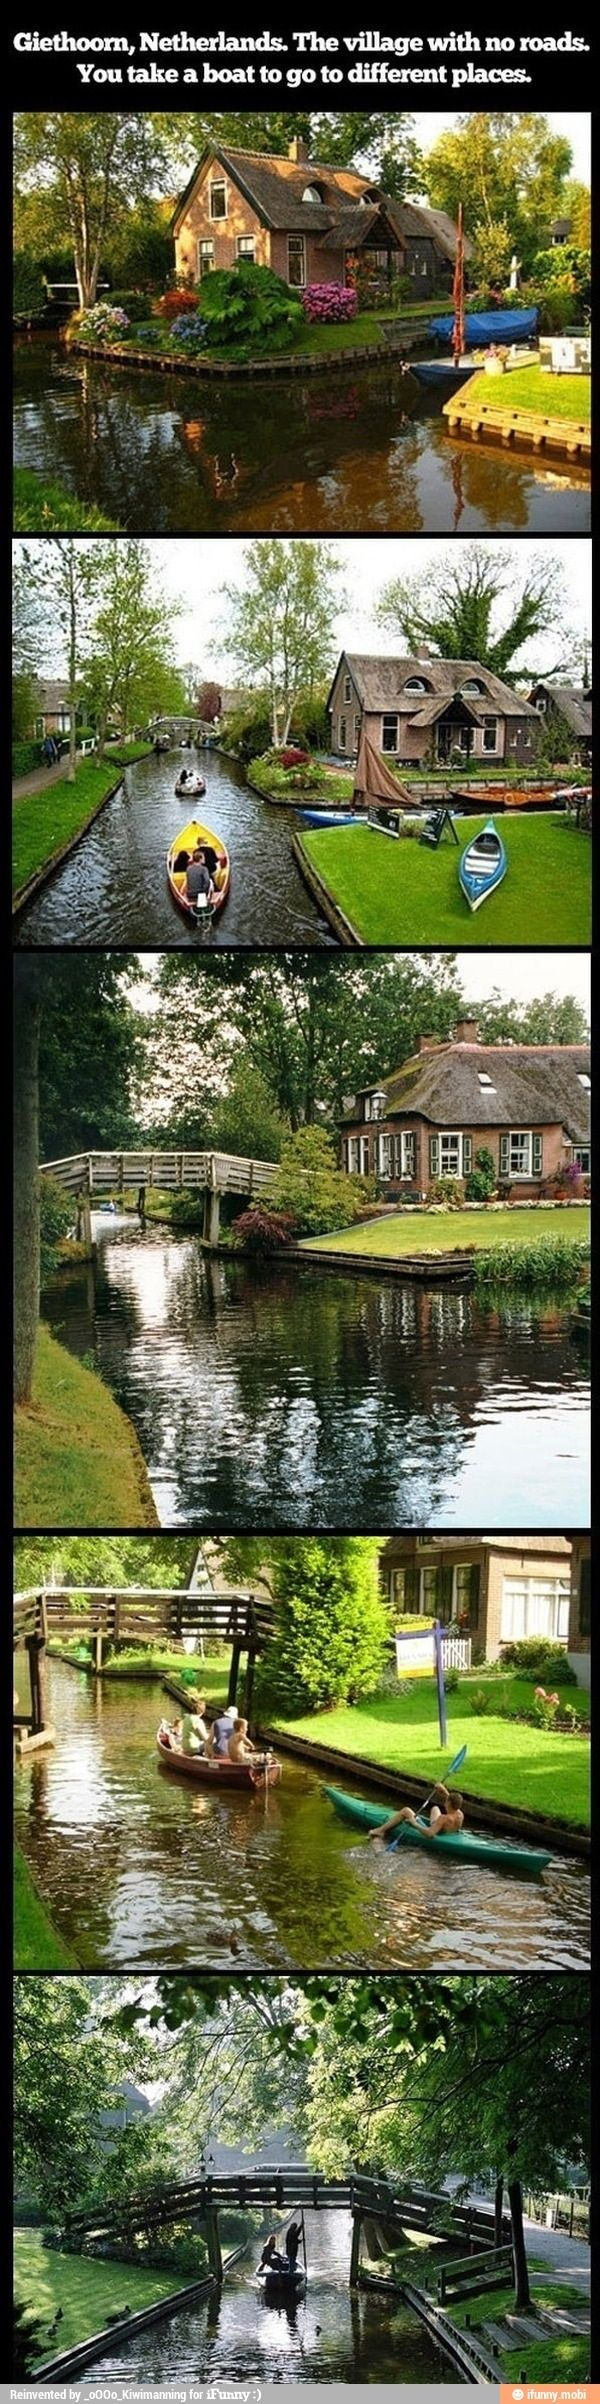 This city is in The Netherlands and like Venice, Italy, has no roads. What a quaint little town!.